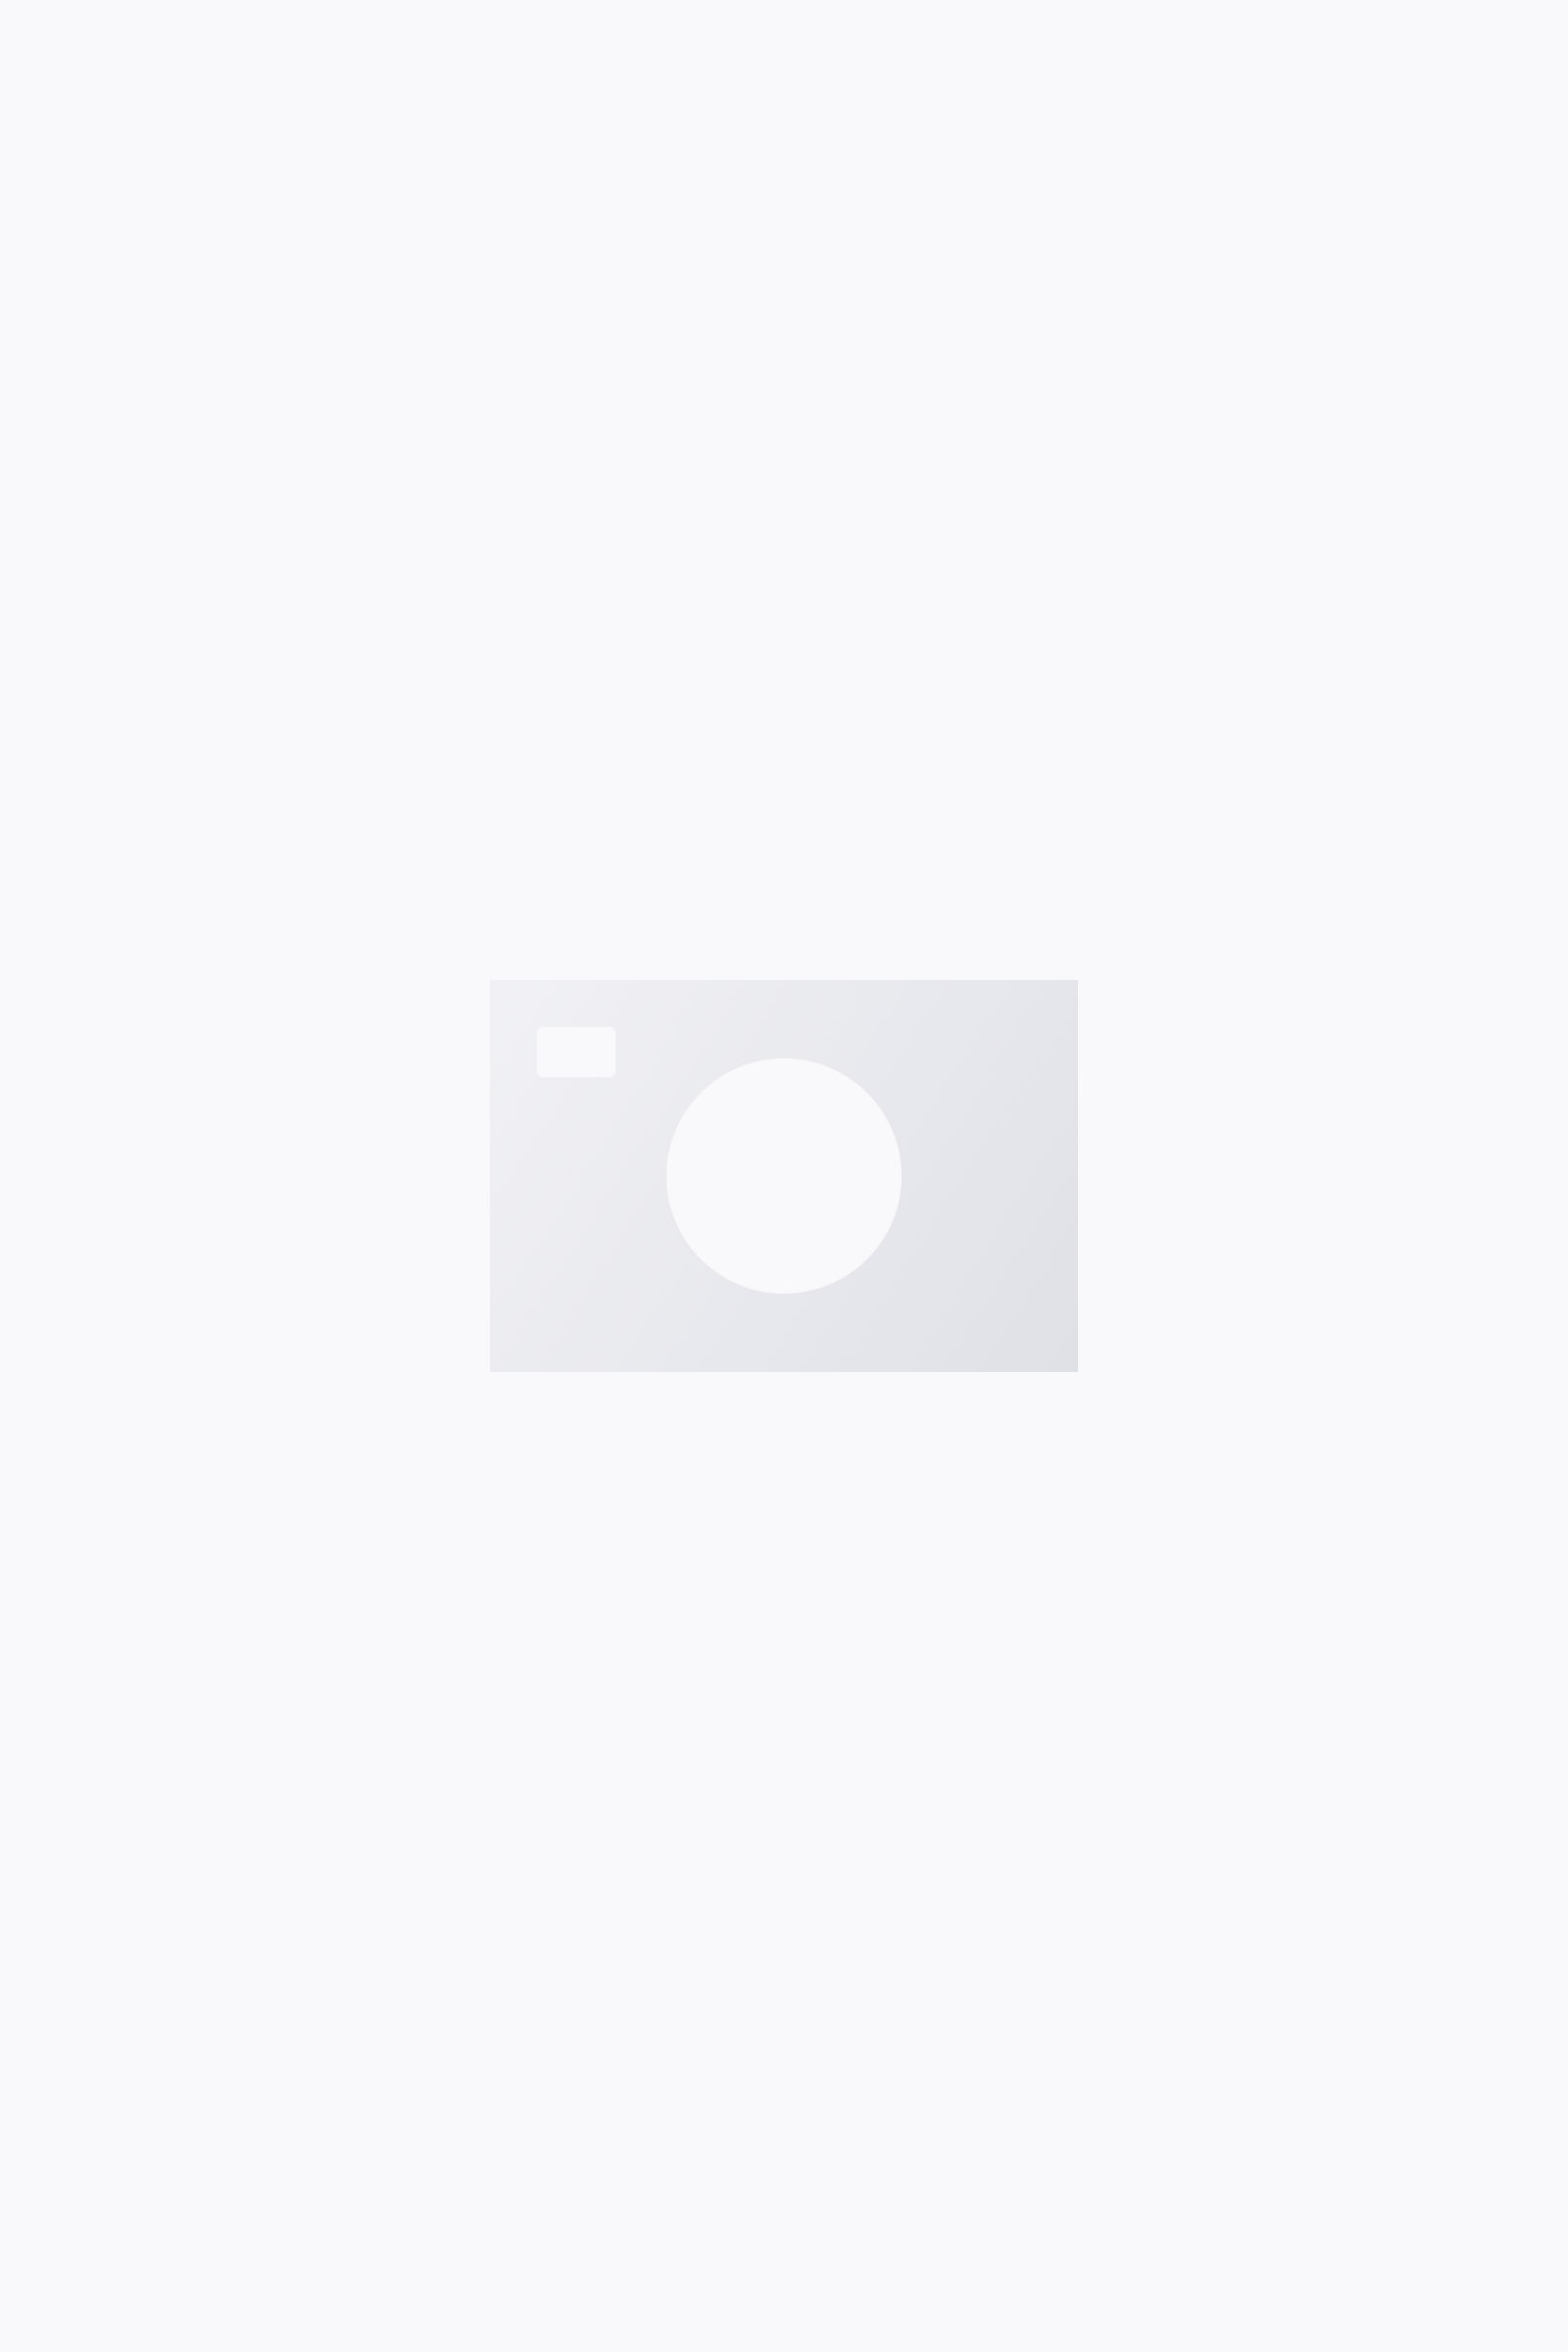 COS LINEN BELTED JUMPSUIT,Black